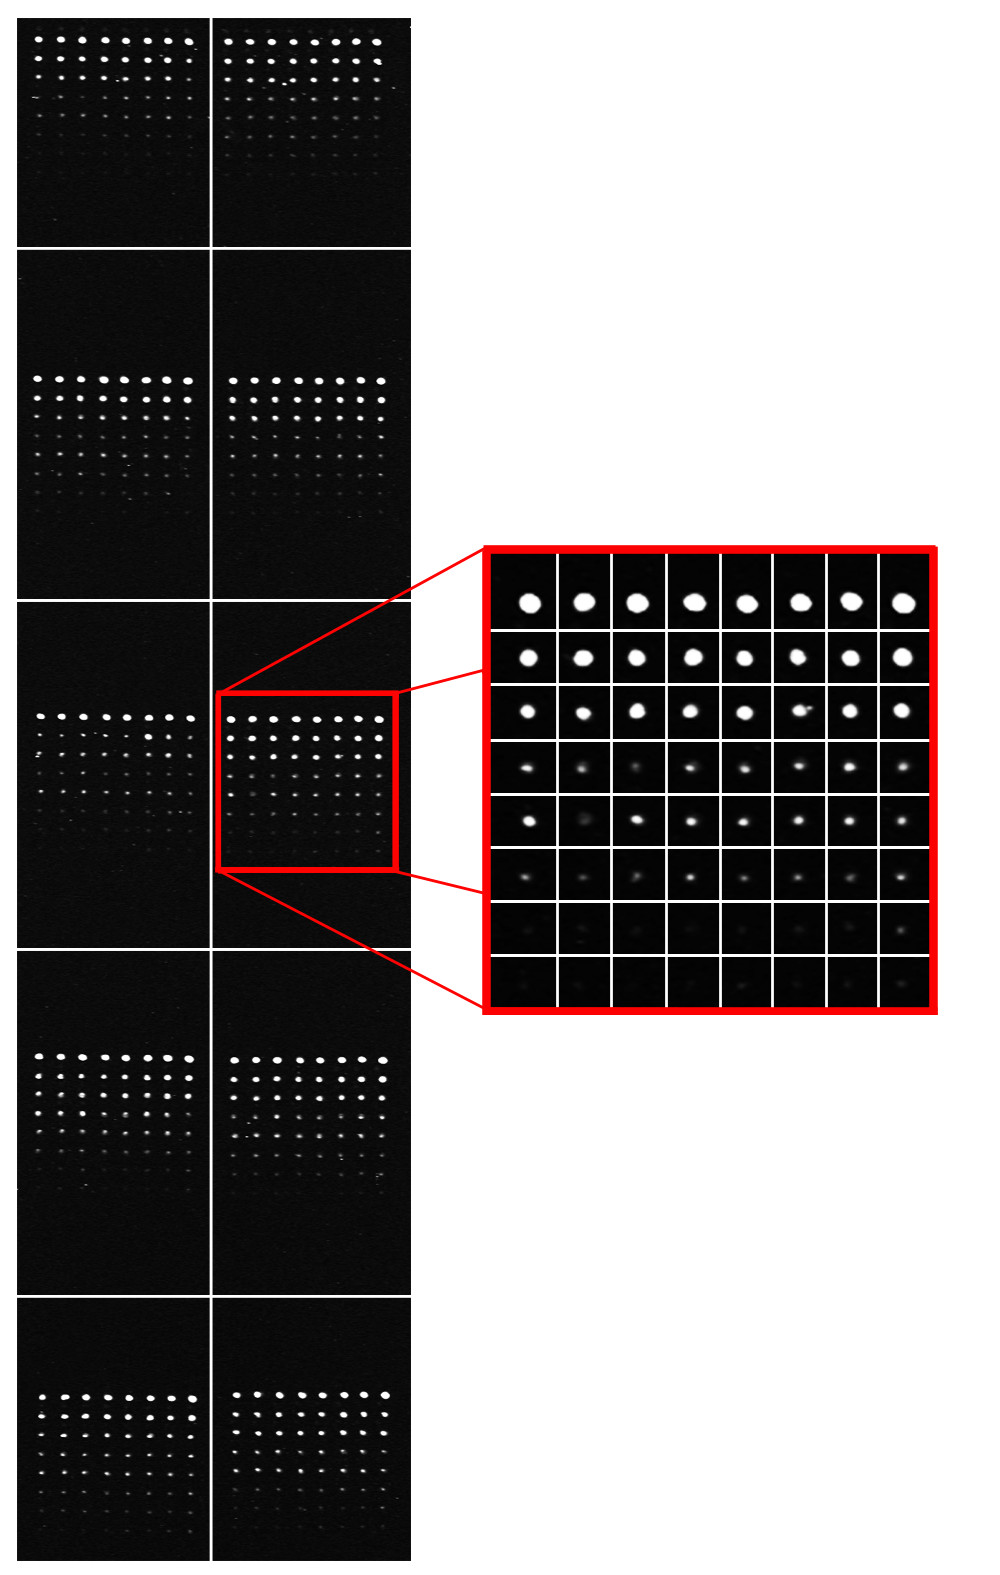 https://static-content.springer.com/image/art%3A10.1186%2F1471-2105-12-113/MediaObjects/12859_2010_Article_4507_Fig3_HTML.jpg